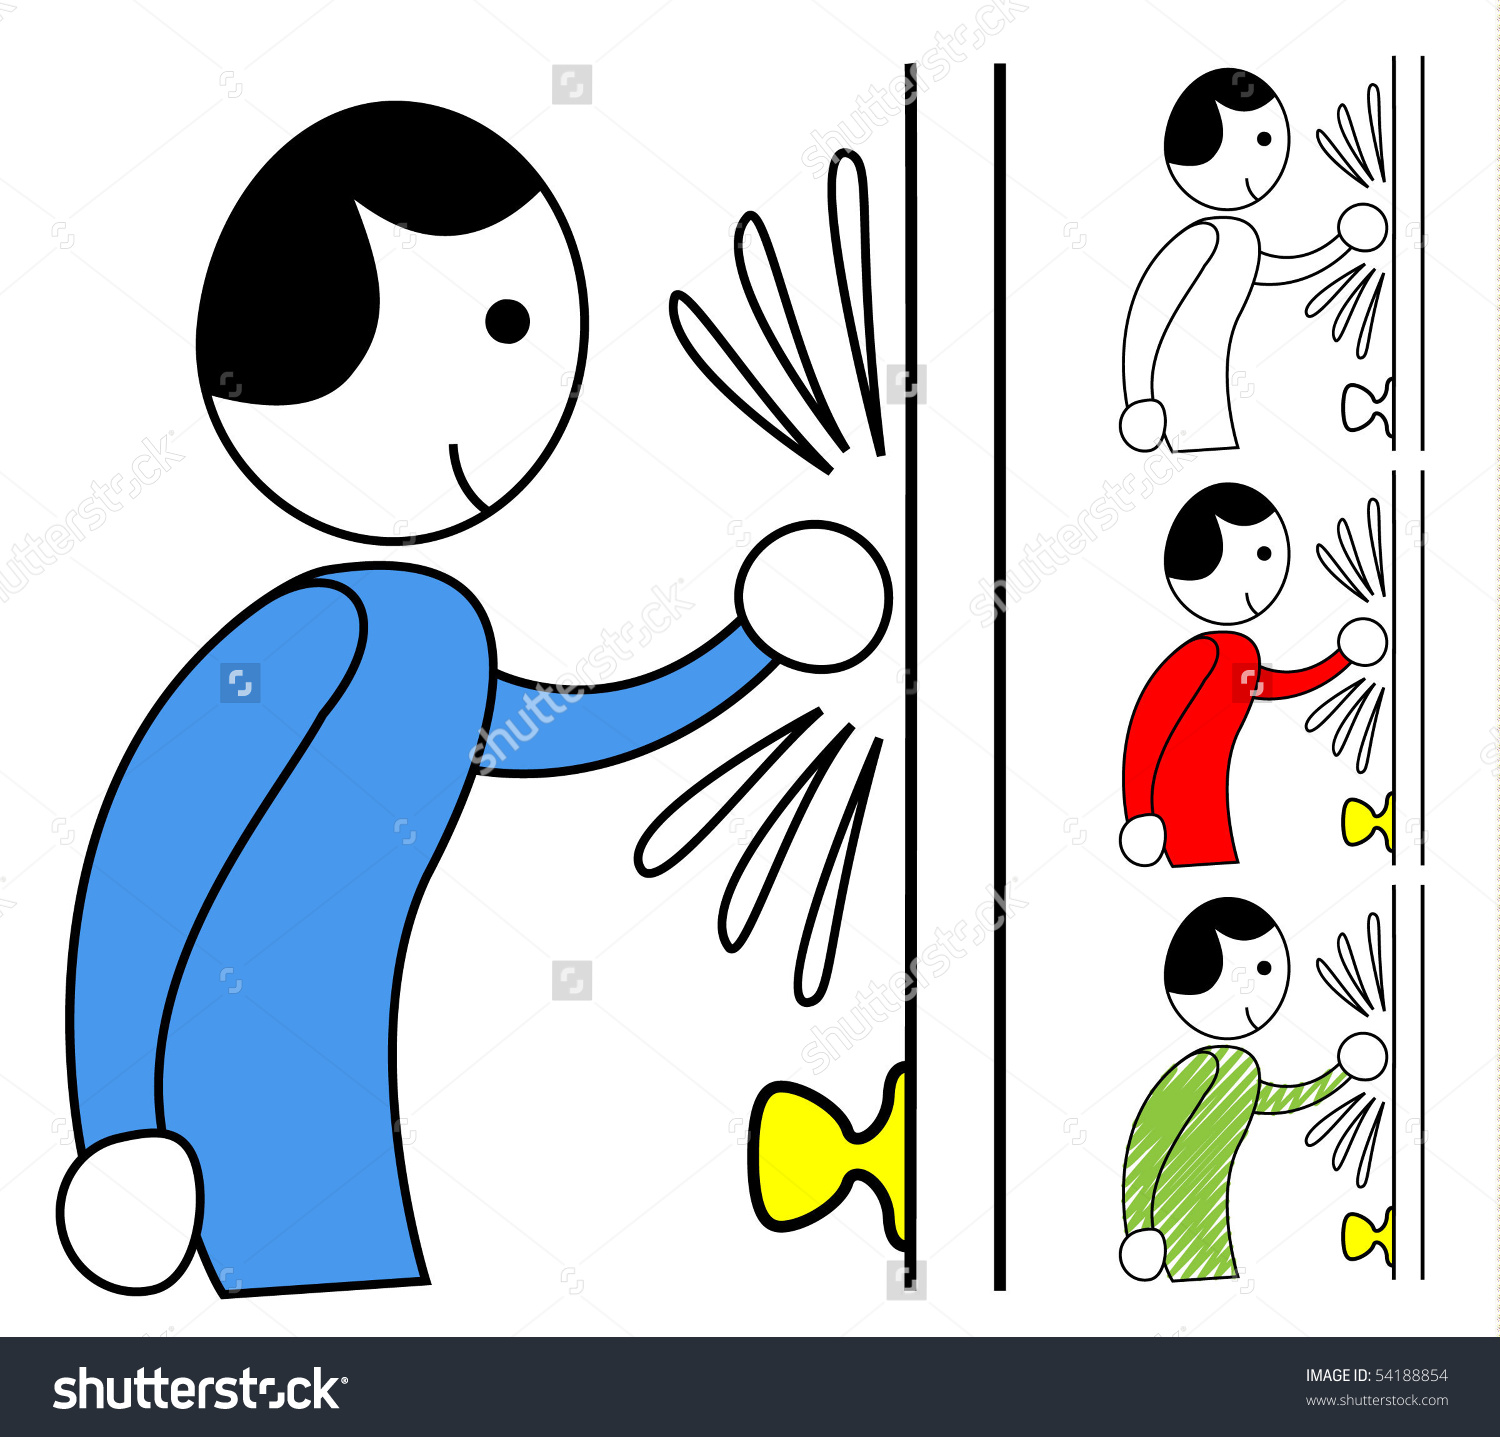 Person Knocking Door Stock Vector 54188854.